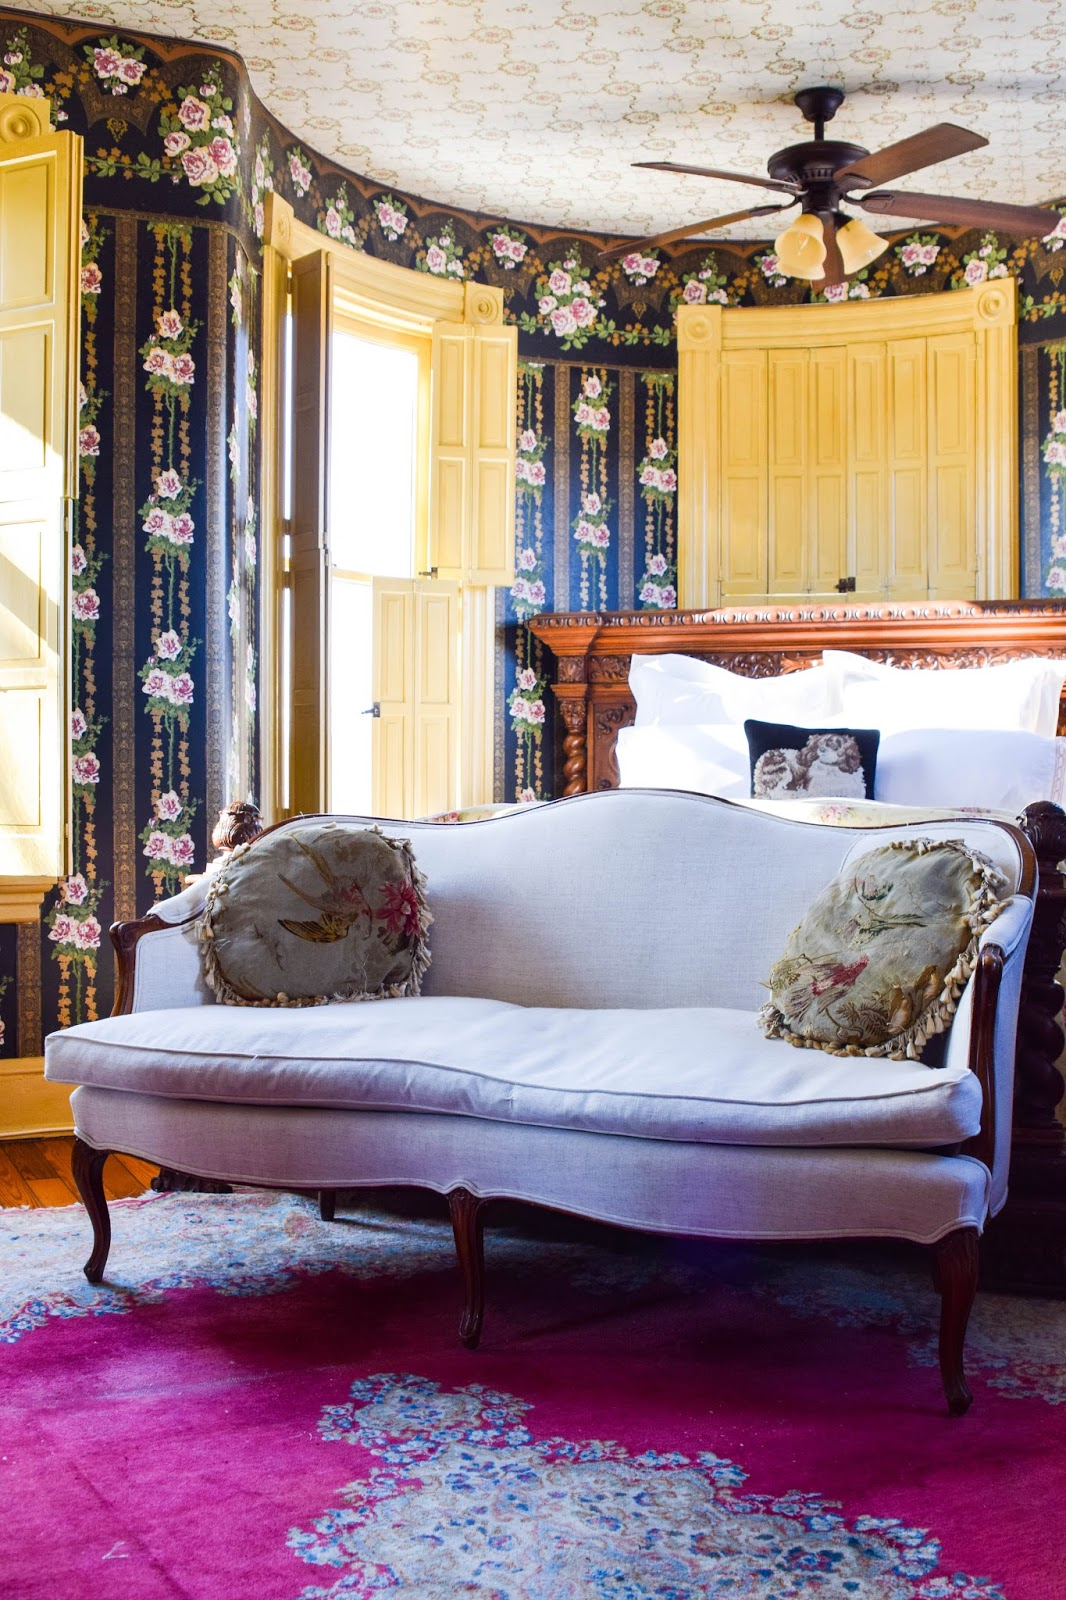 10 clarke bed and breakfast - frederick, maryland bed and breakfast